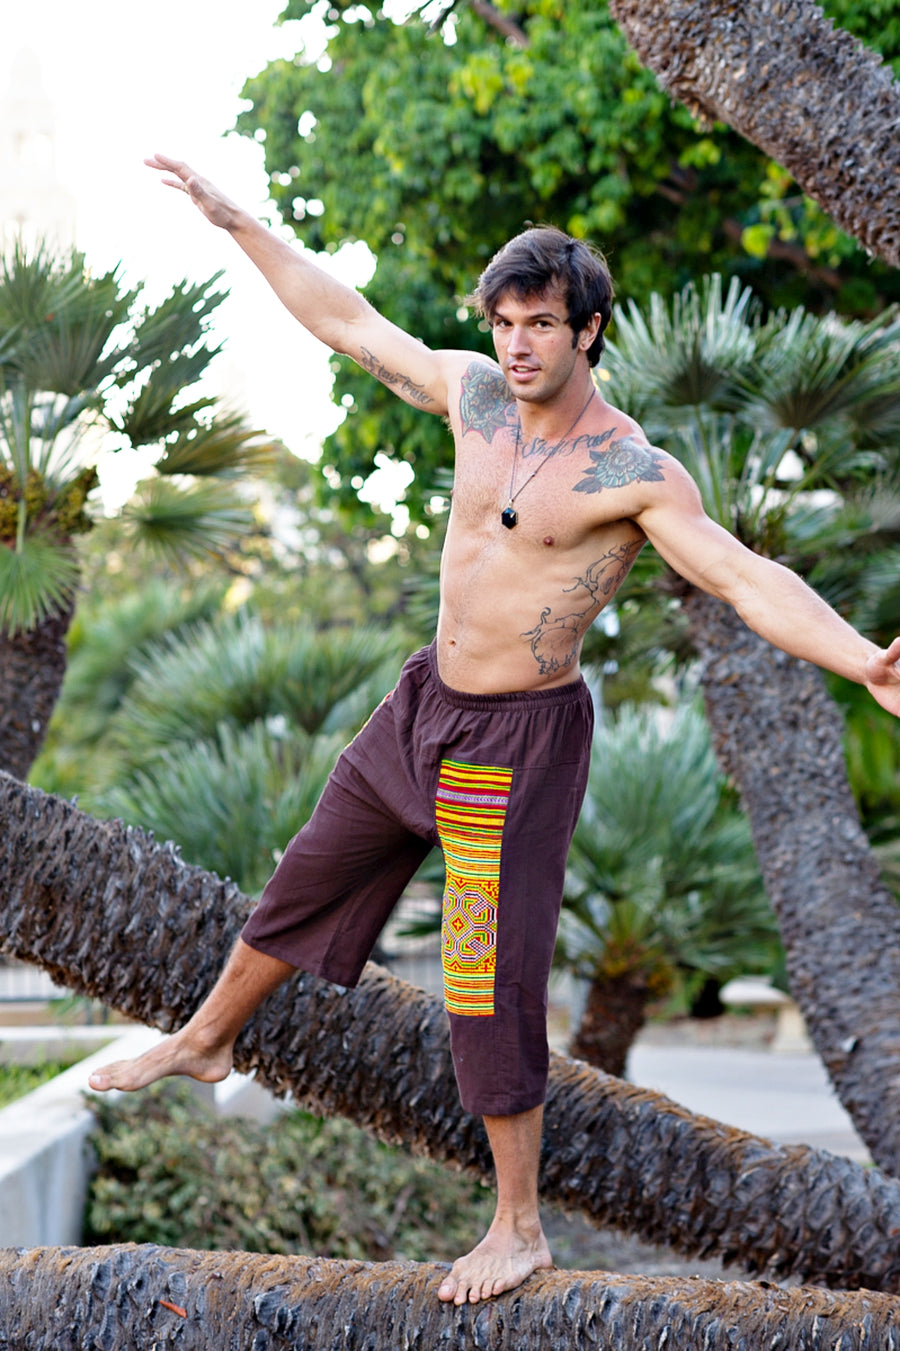 Upcycled Tribal Fabric Shorts in Brown-The High Thai-The High Thai-Yoga Pants-Harem Pants-Hippie Clothing-San Diego